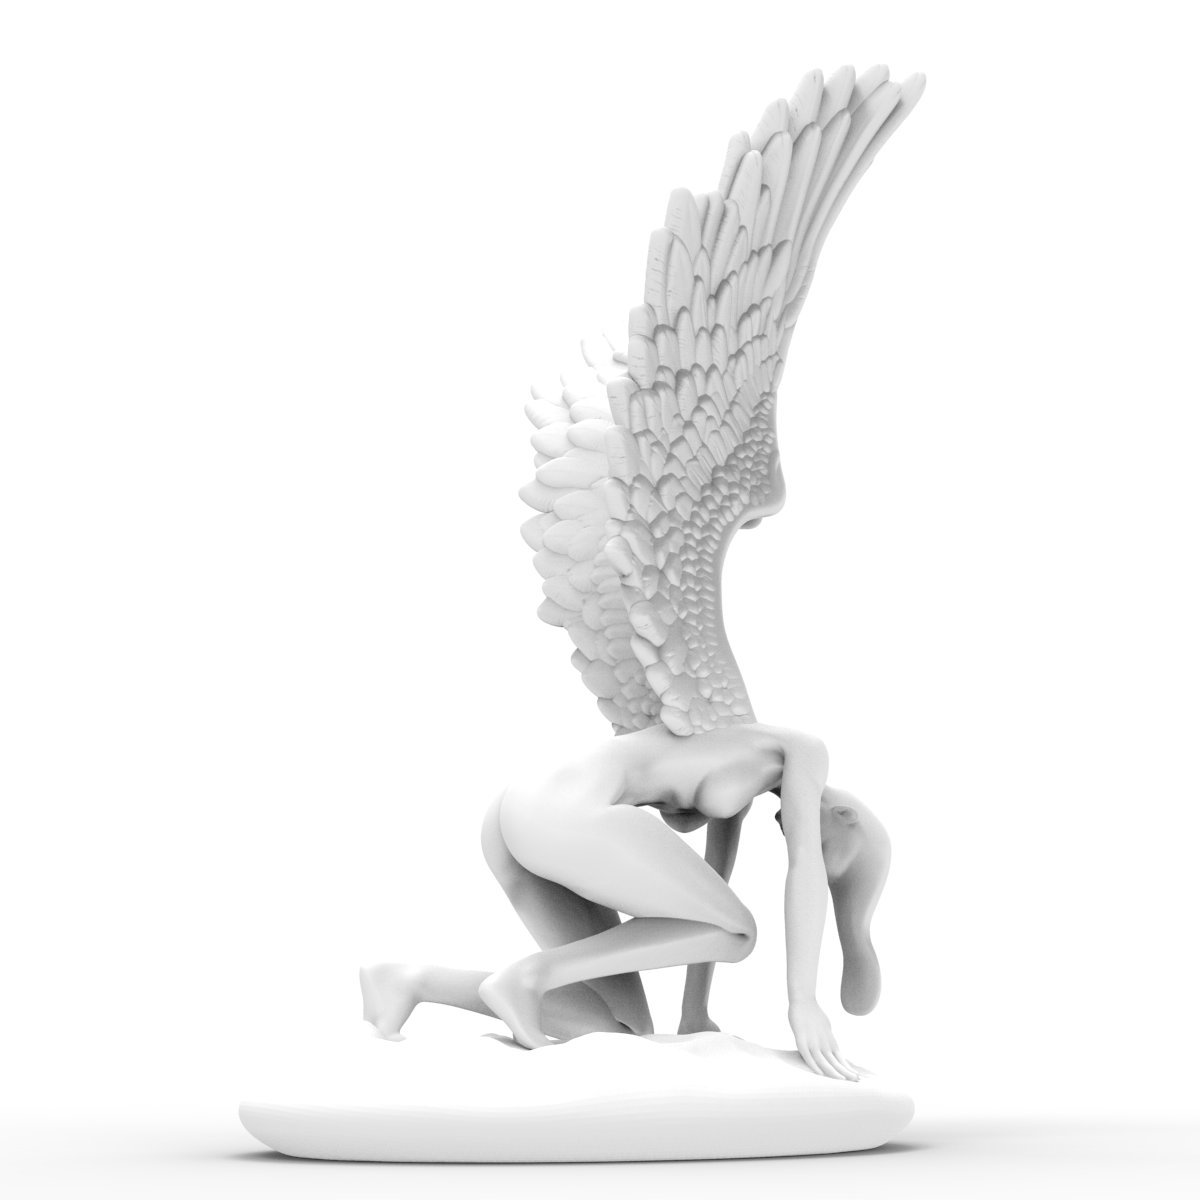 Tomfeel Angel Statue with Wings 3D Printed Sculpture West